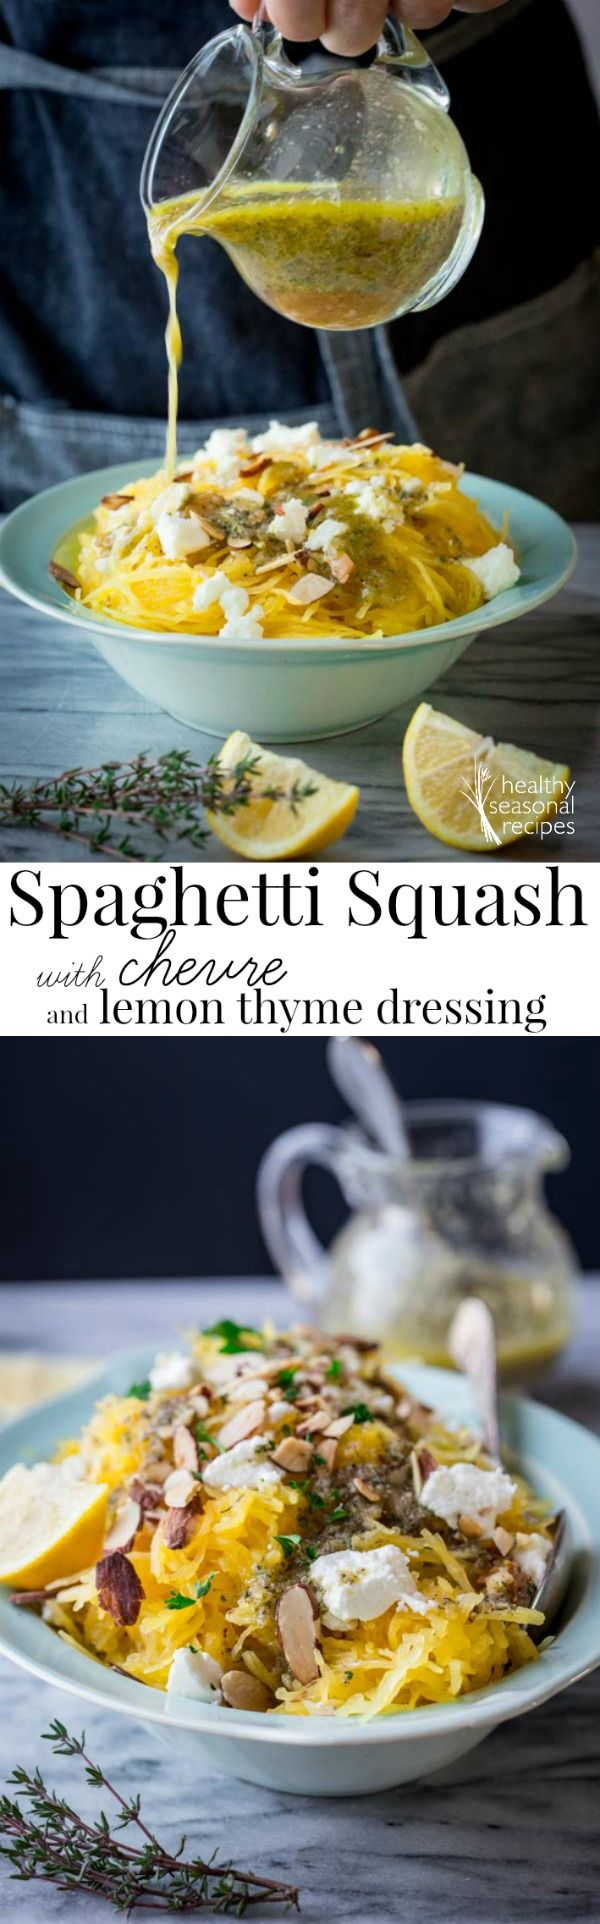 spaghetti squash with chèvre and lemon thyme dressing - Healthy Seasonal Recipes